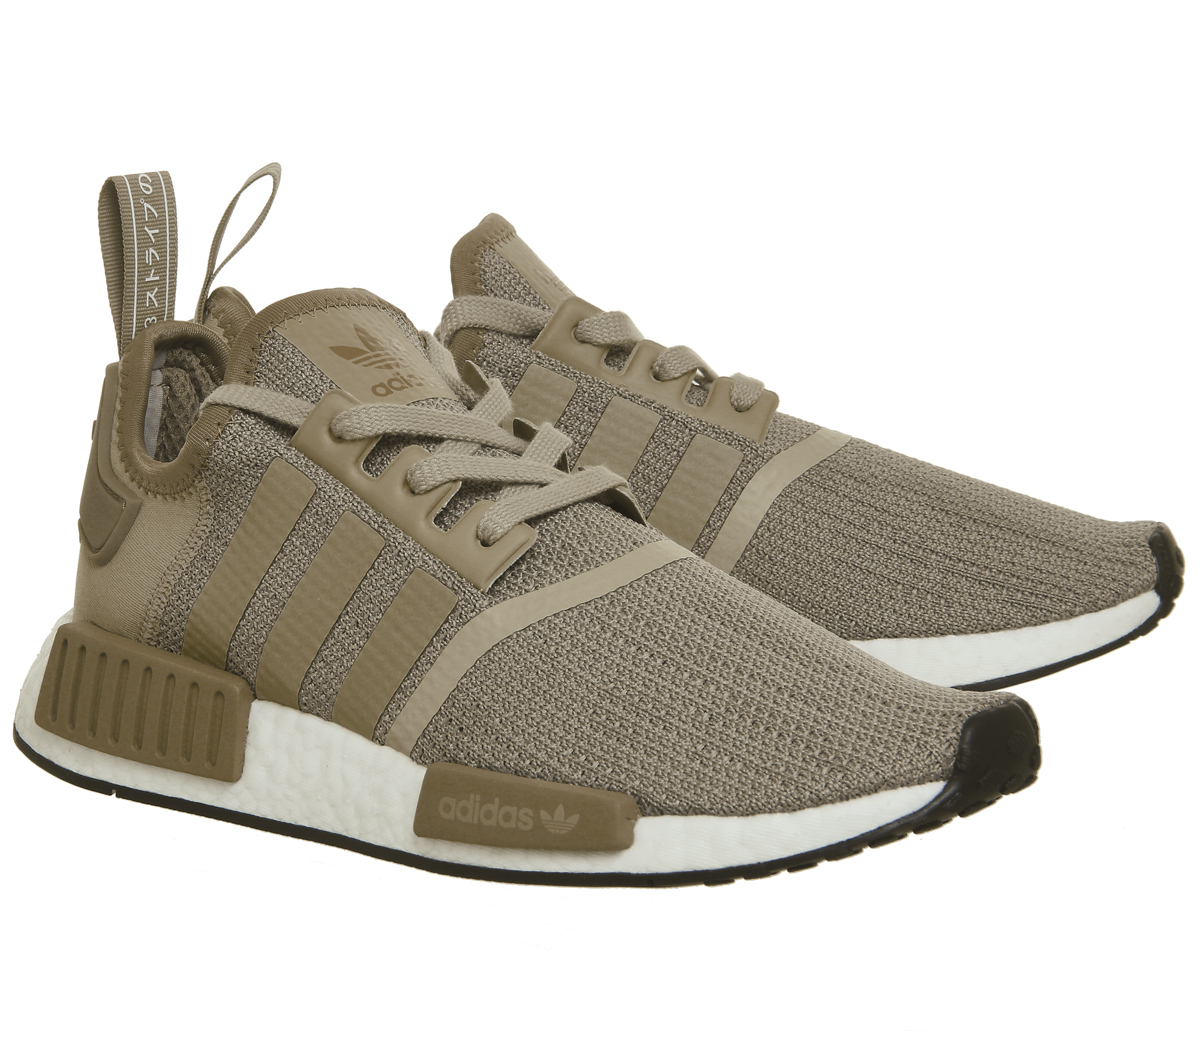 10de31395 Adidas Nmd R1 Trainers RAW GOLD CARDBOARD WHITE Trainers Shoes